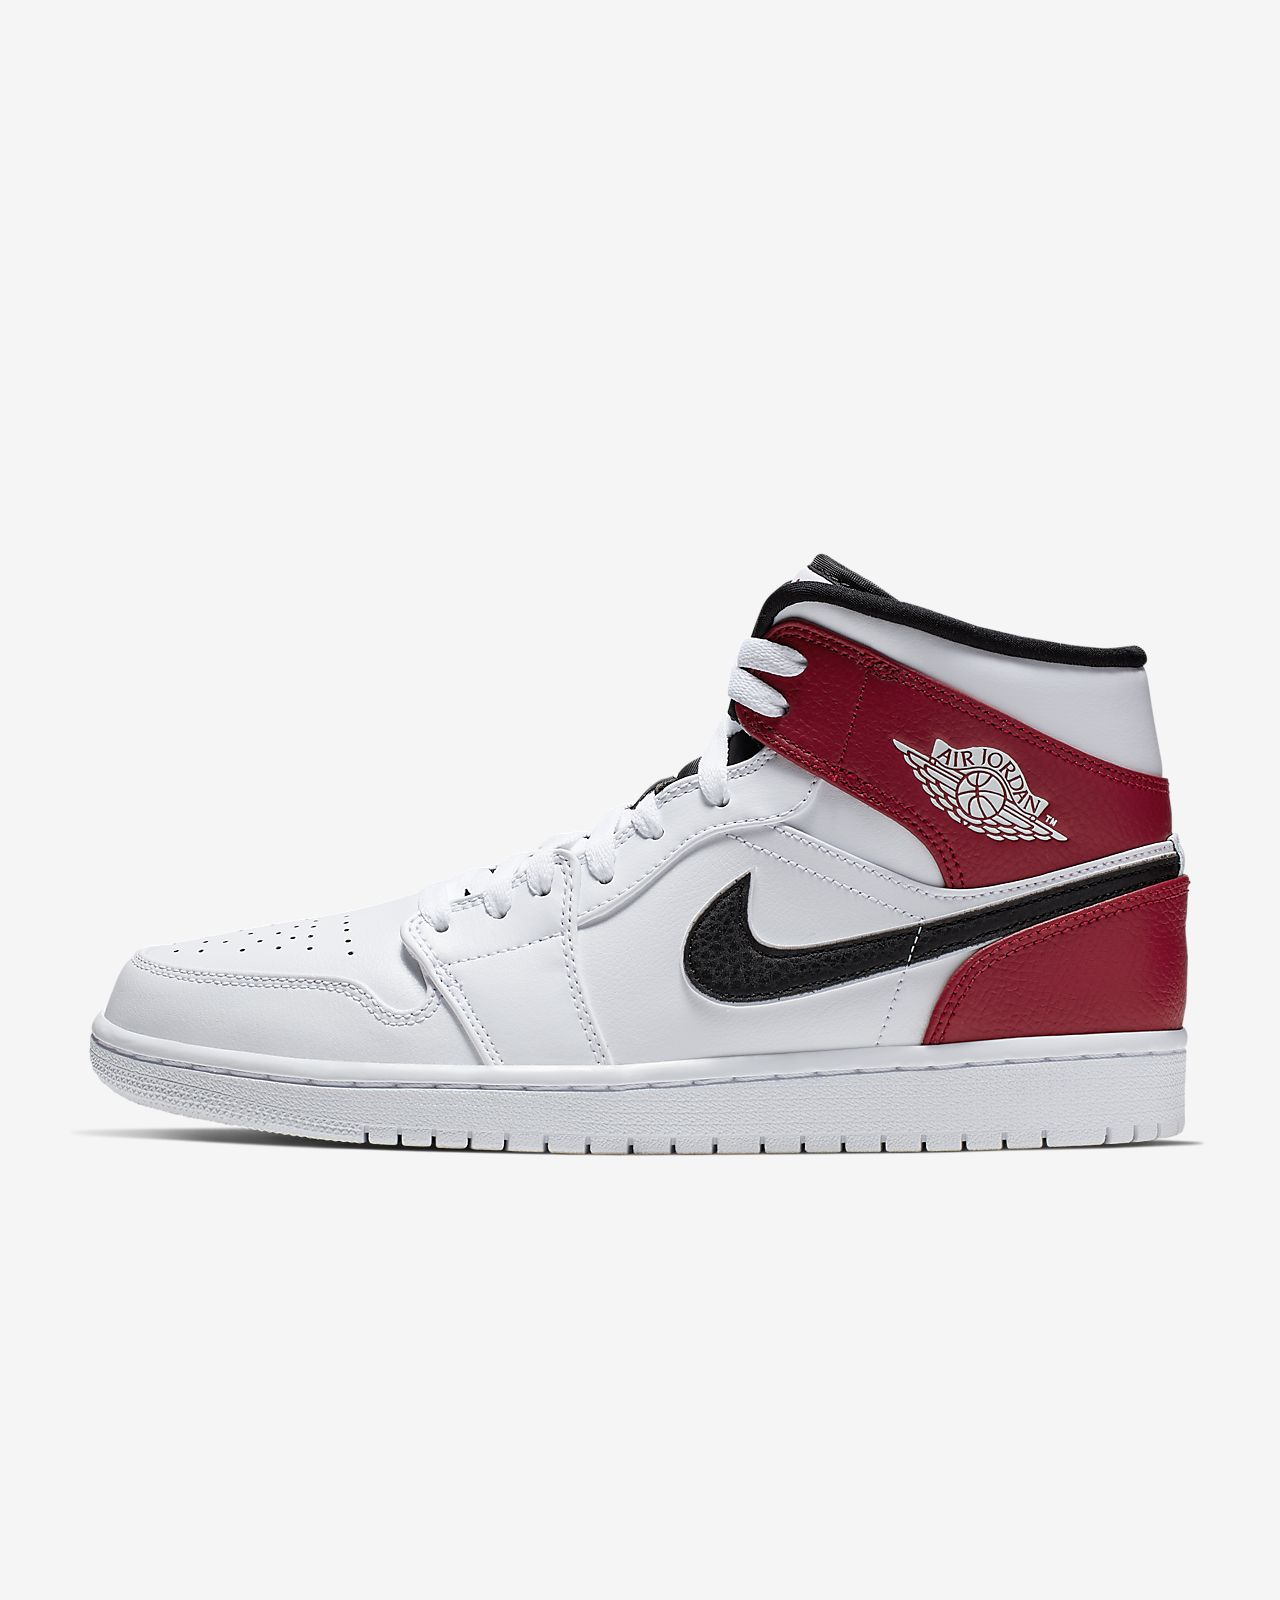 on sale 04f85 2f6a9 Air Jordan 1 Mid Men's Shoe. Nike.com IE